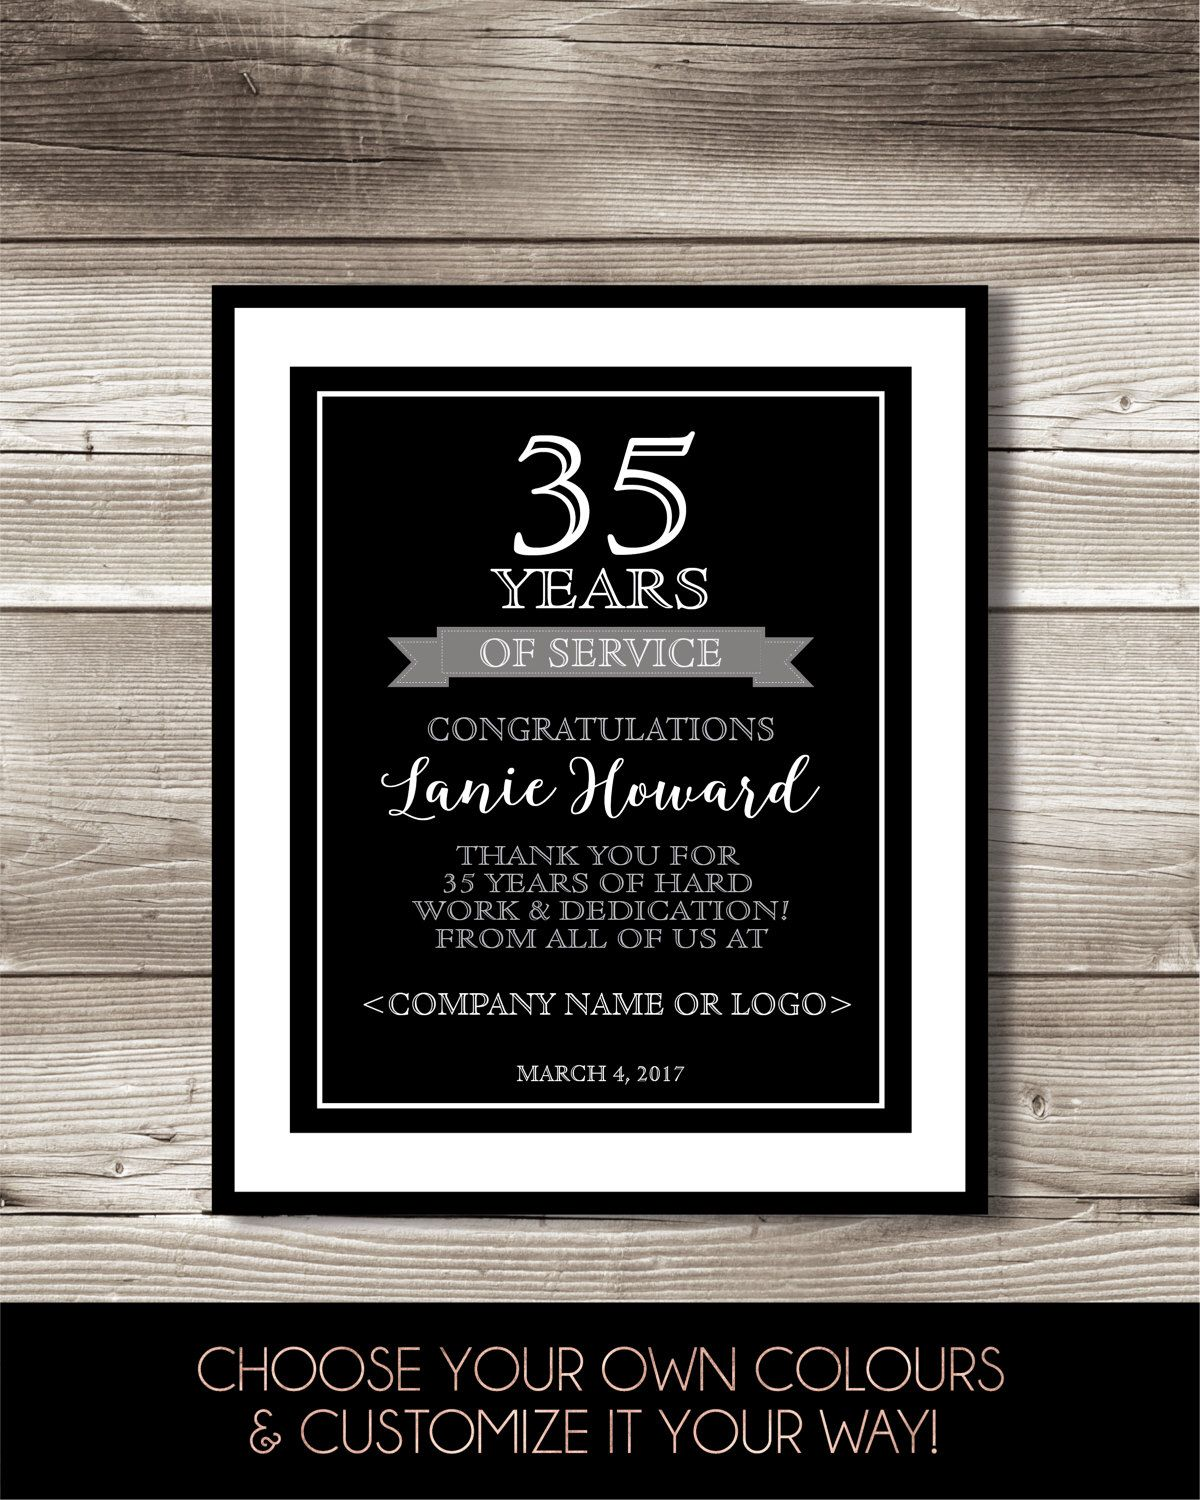 35 Year Work Anniversary Print 35th Work Anniversary Digital Print Personalized Thank You Gift Years Of Service Employee Recognition Work Anniversary Employee Recognition 10 Year Anniversary Gift